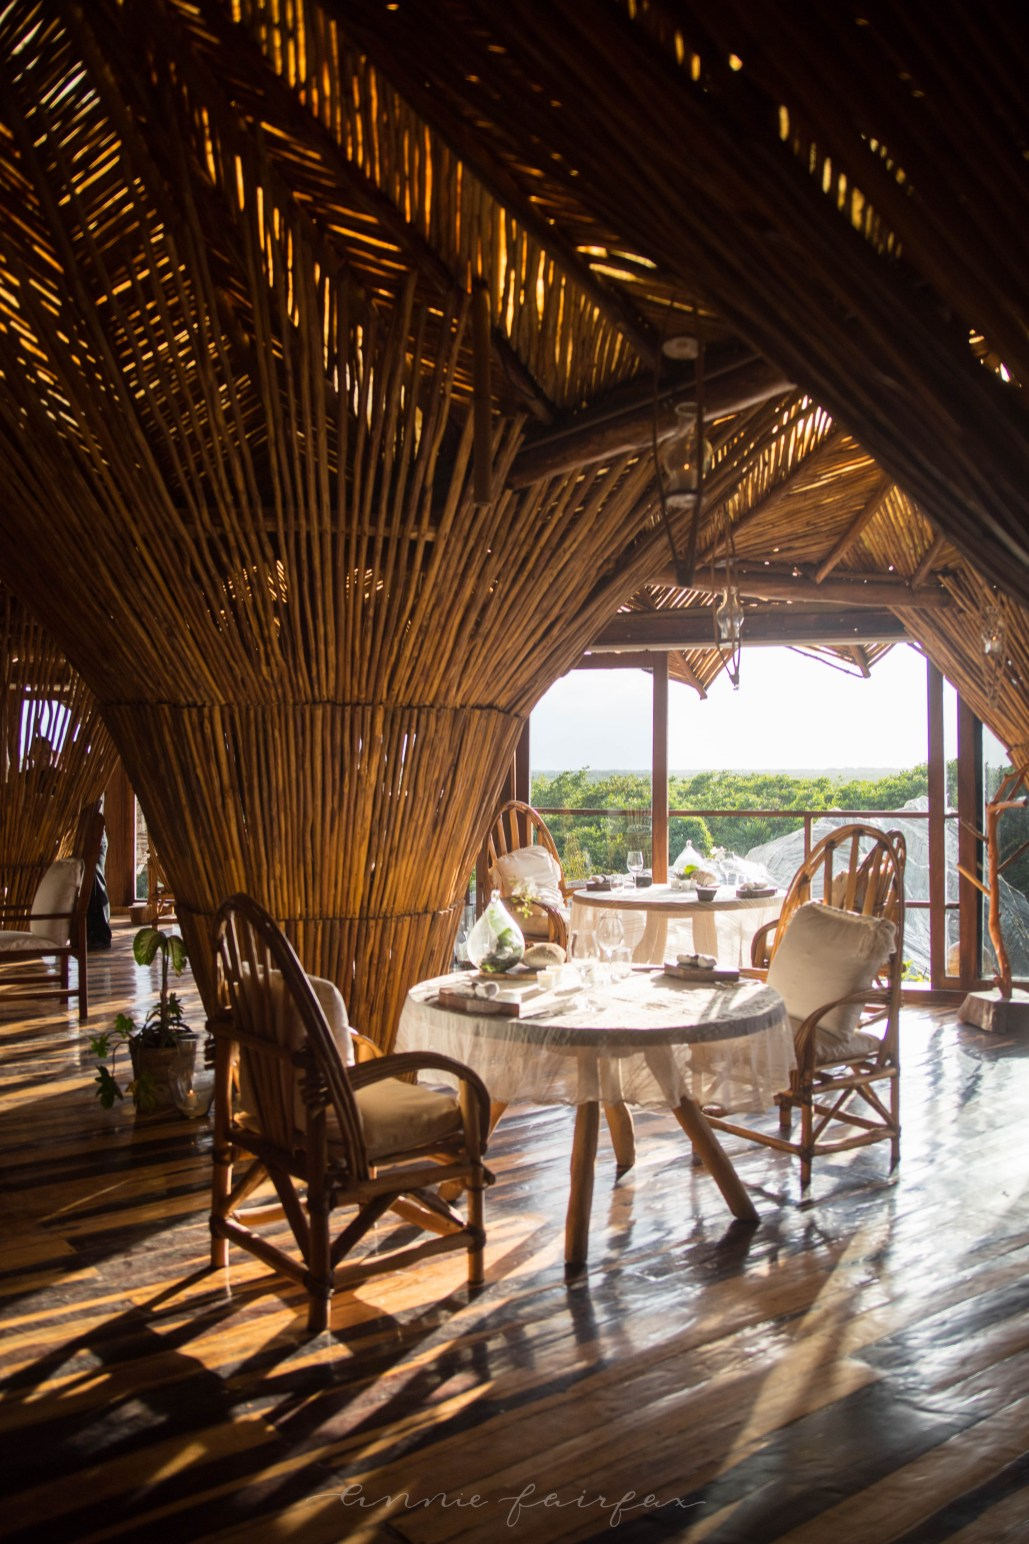 Kin Toh Tree House Nest Restaurant at Azulik Resort Tulum, Mexico View of Jungle Best Places to Eat in Tulum Mexico Quintana Roo Yucatan